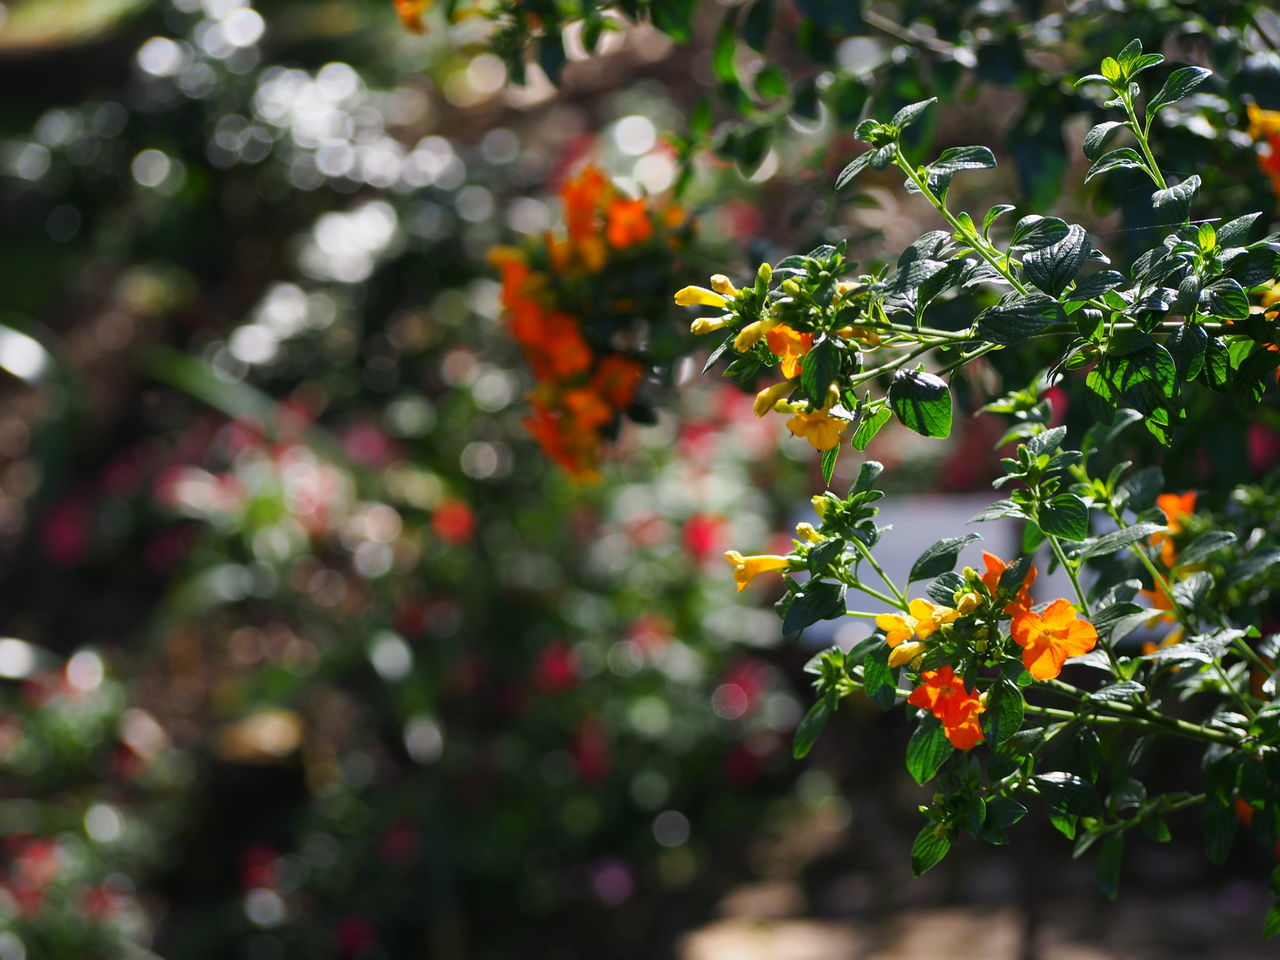 growth, nature, plant, beauty in nature, day, outdoors, no people, tree, freshness, flower, green color, fruit, fragility, close-up